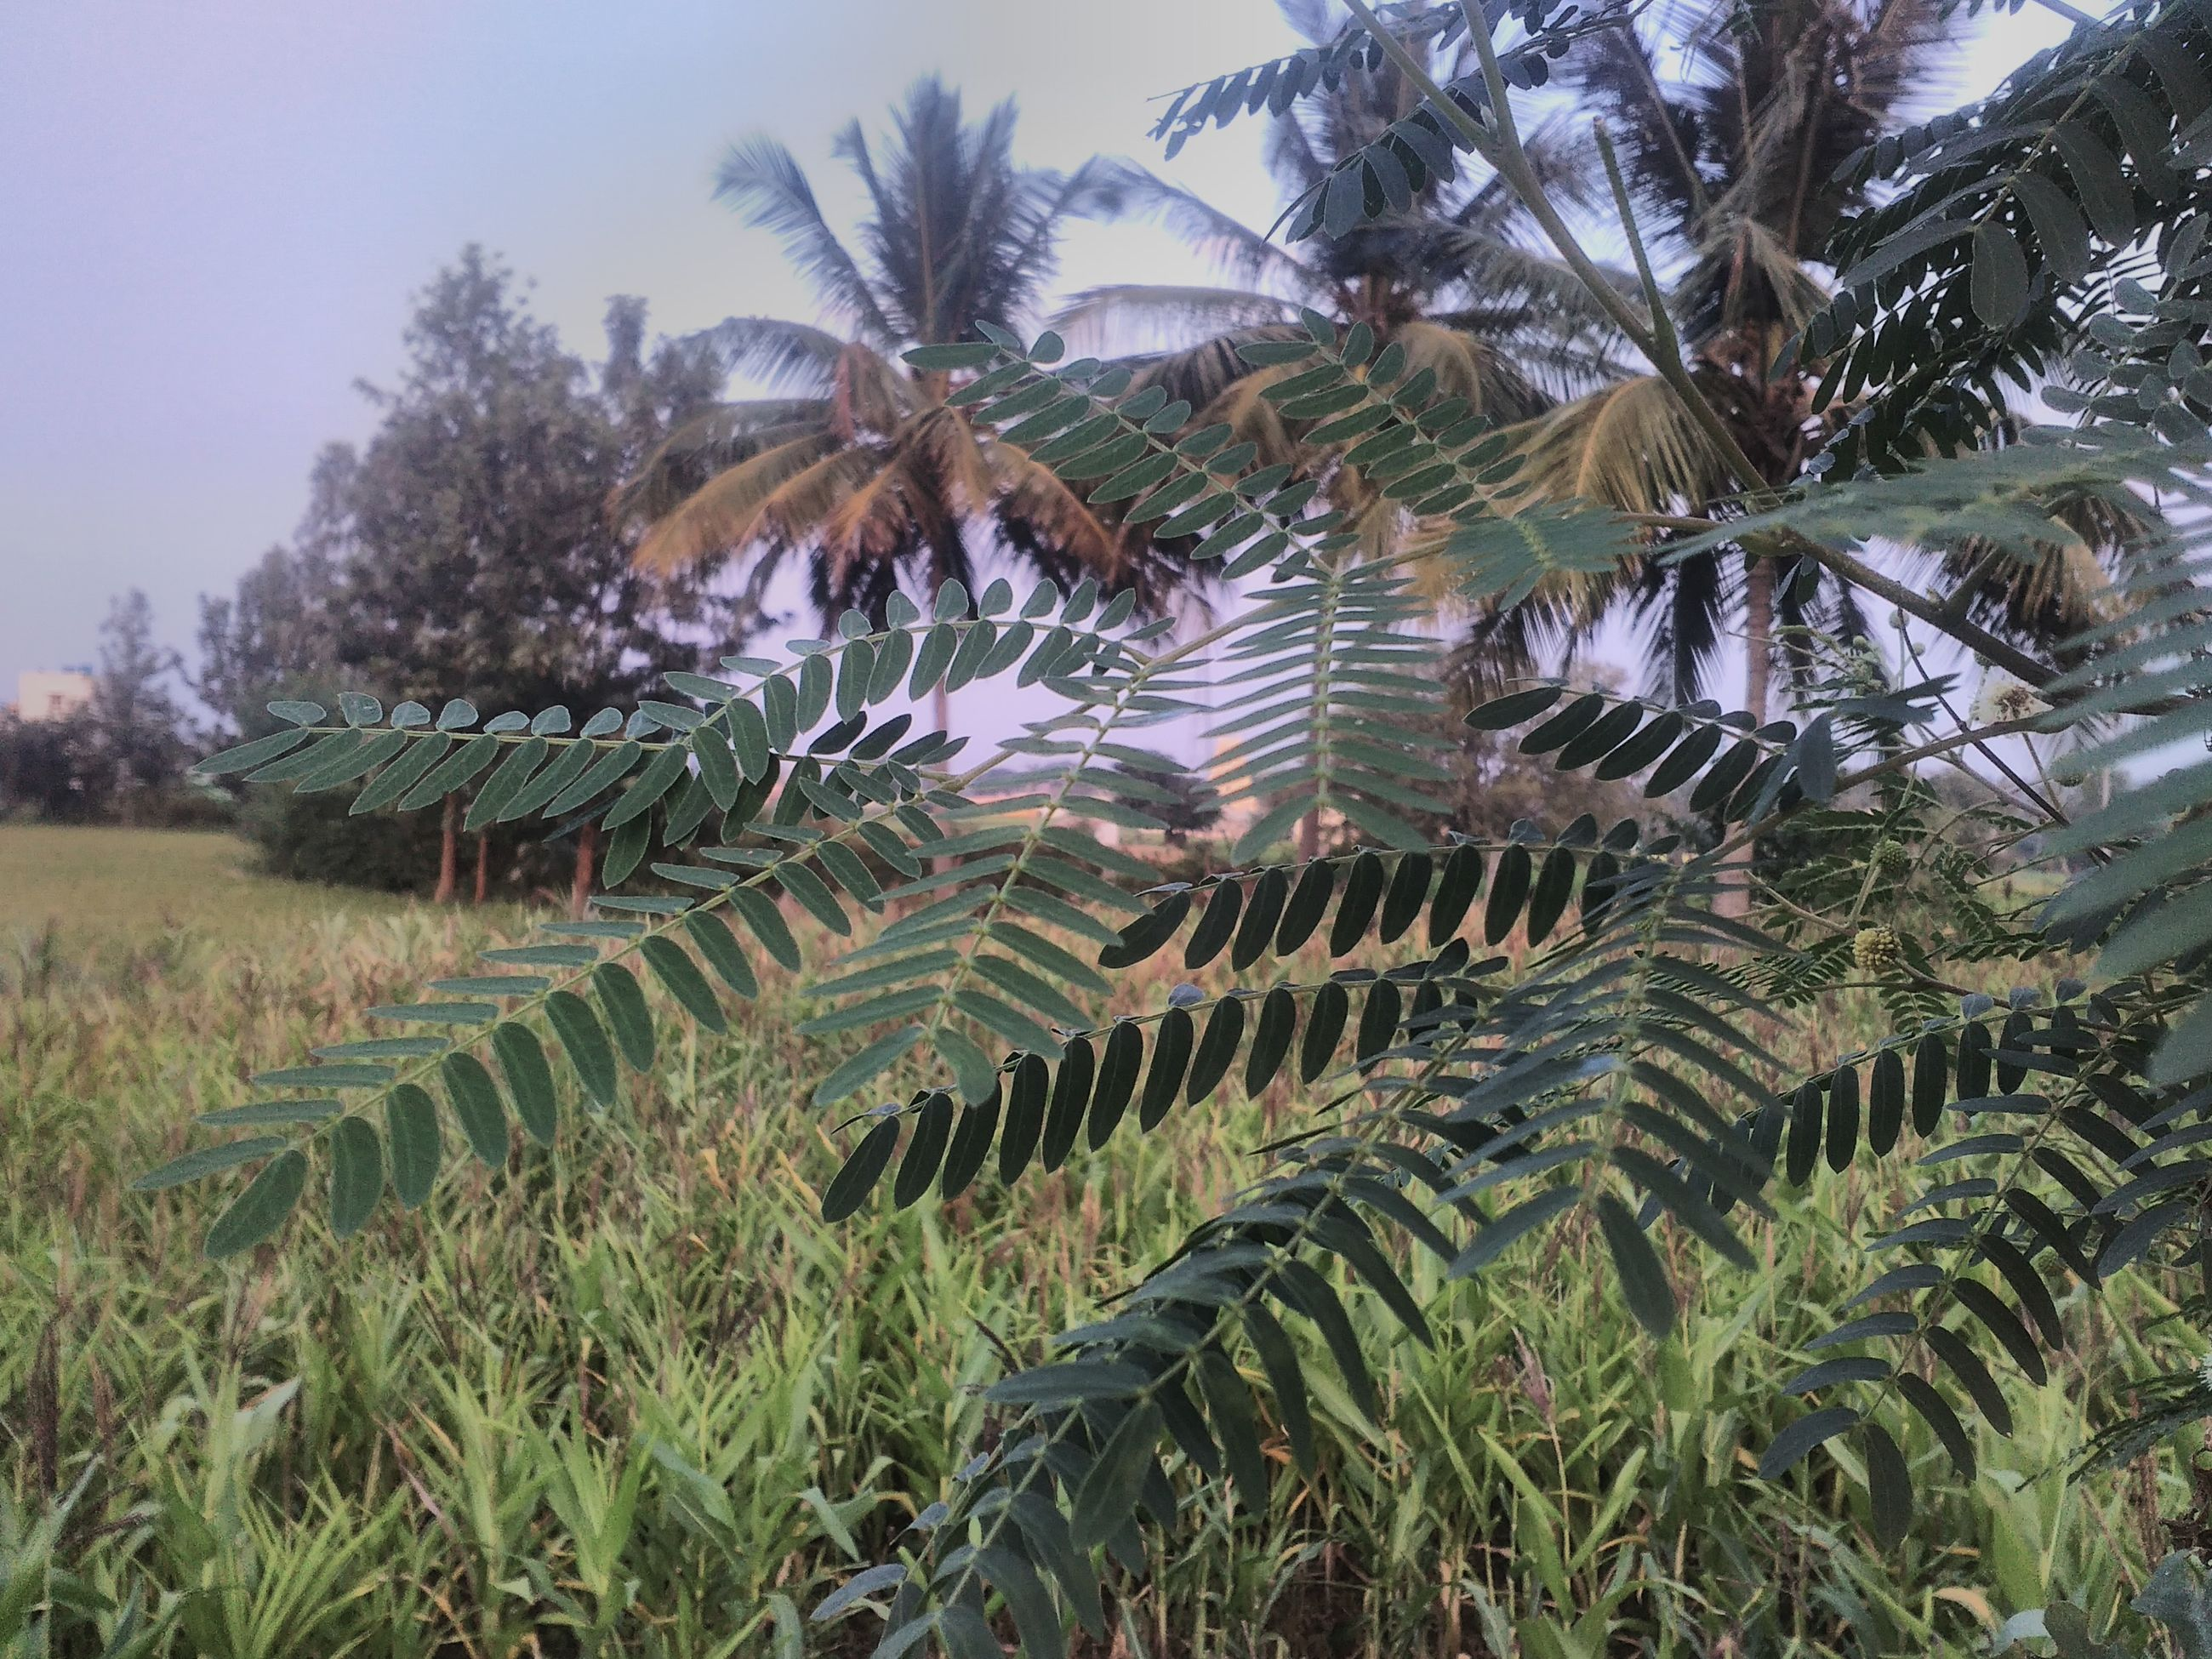 tree, growth, palm tree, nature, beauty in nature, agriculture, tranquil scene, tranquility, scenics, no people, outdoors, landscape, day, olive tree, sky